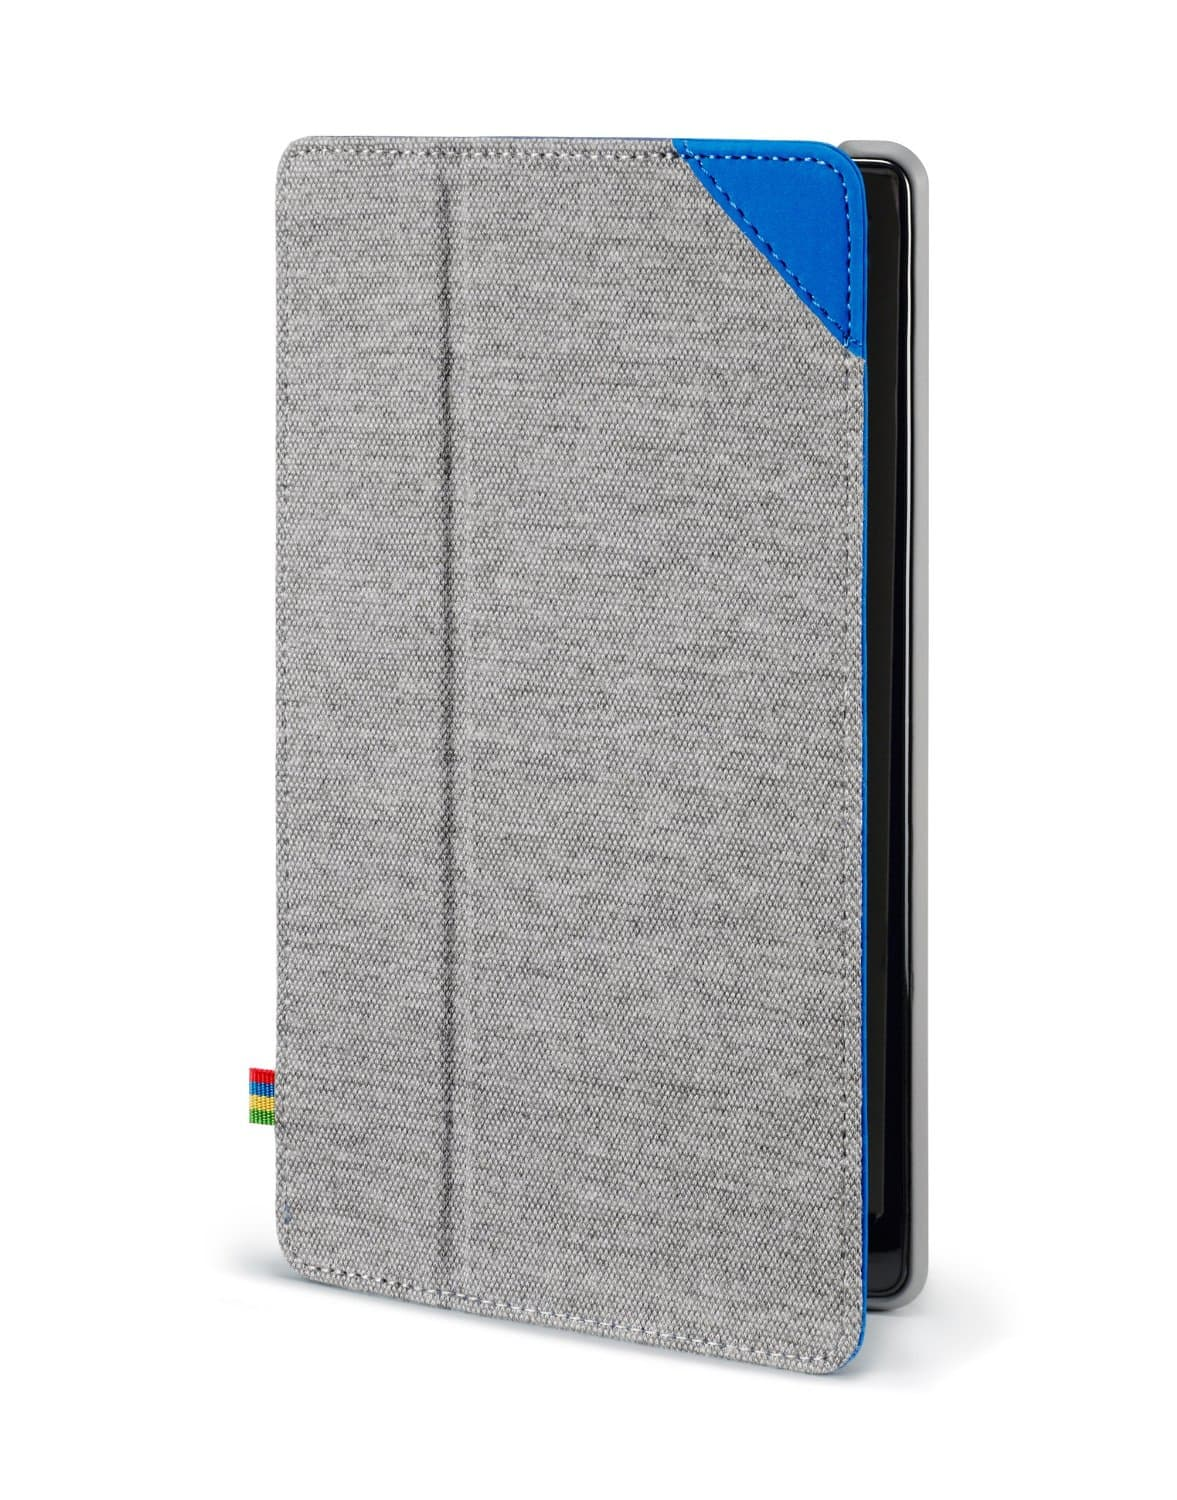 Google Case for Nexus 7 2nd Gen Tablet (Various Colors)  $10 + Free Store Pickup